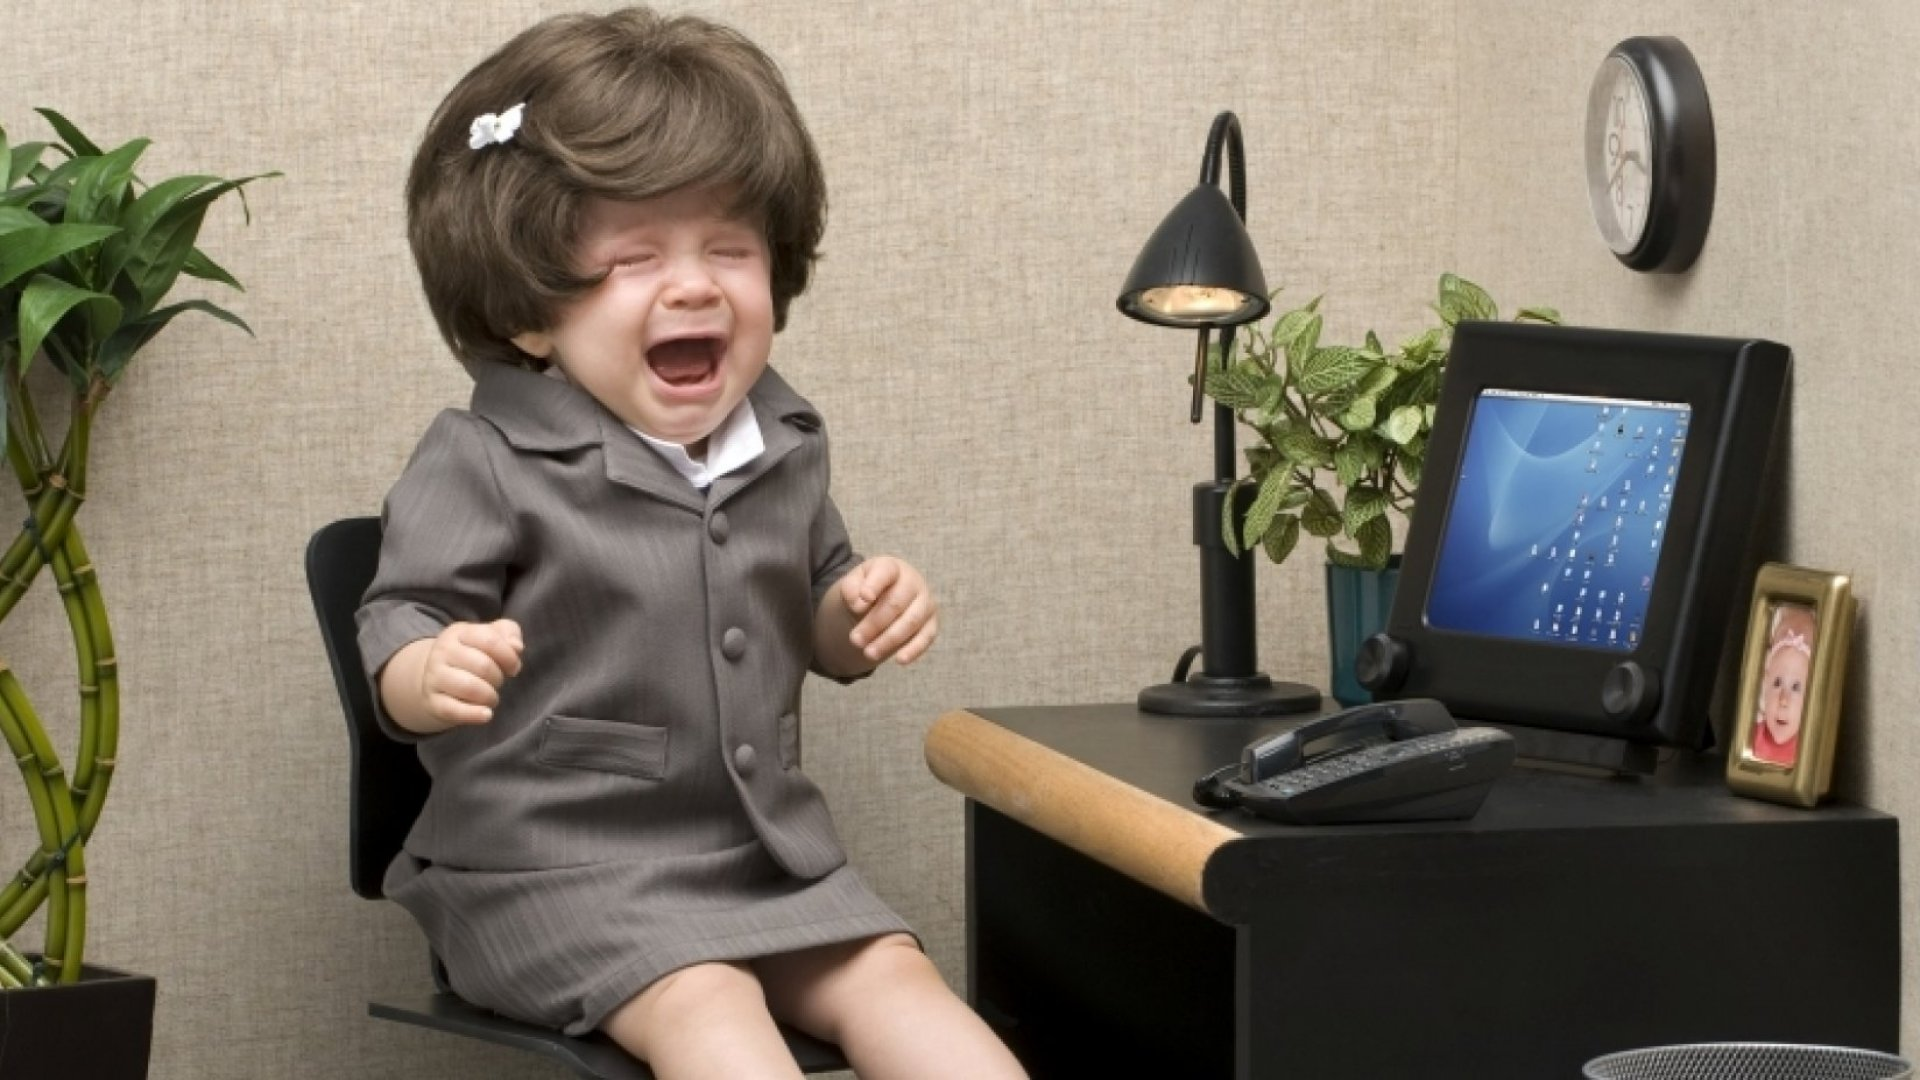 My Boss Gives In to My Co-worker's Temper Tantrums